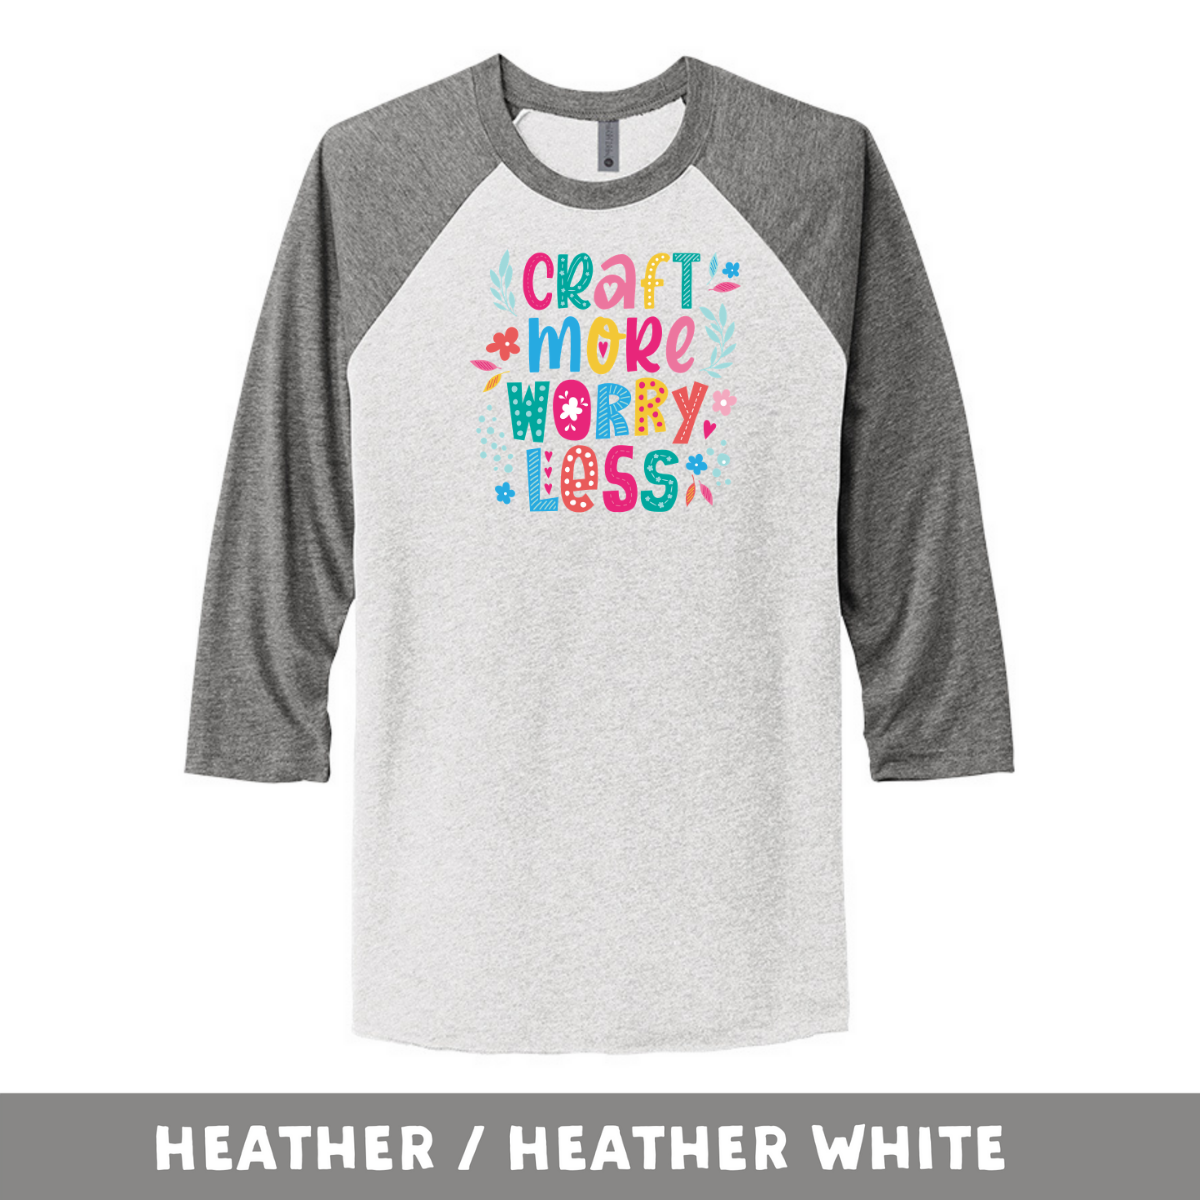 Heather Heather White - Unisex Tri-Blend 3/4 Sleeve Raglan Tee - Craft More Worry Less